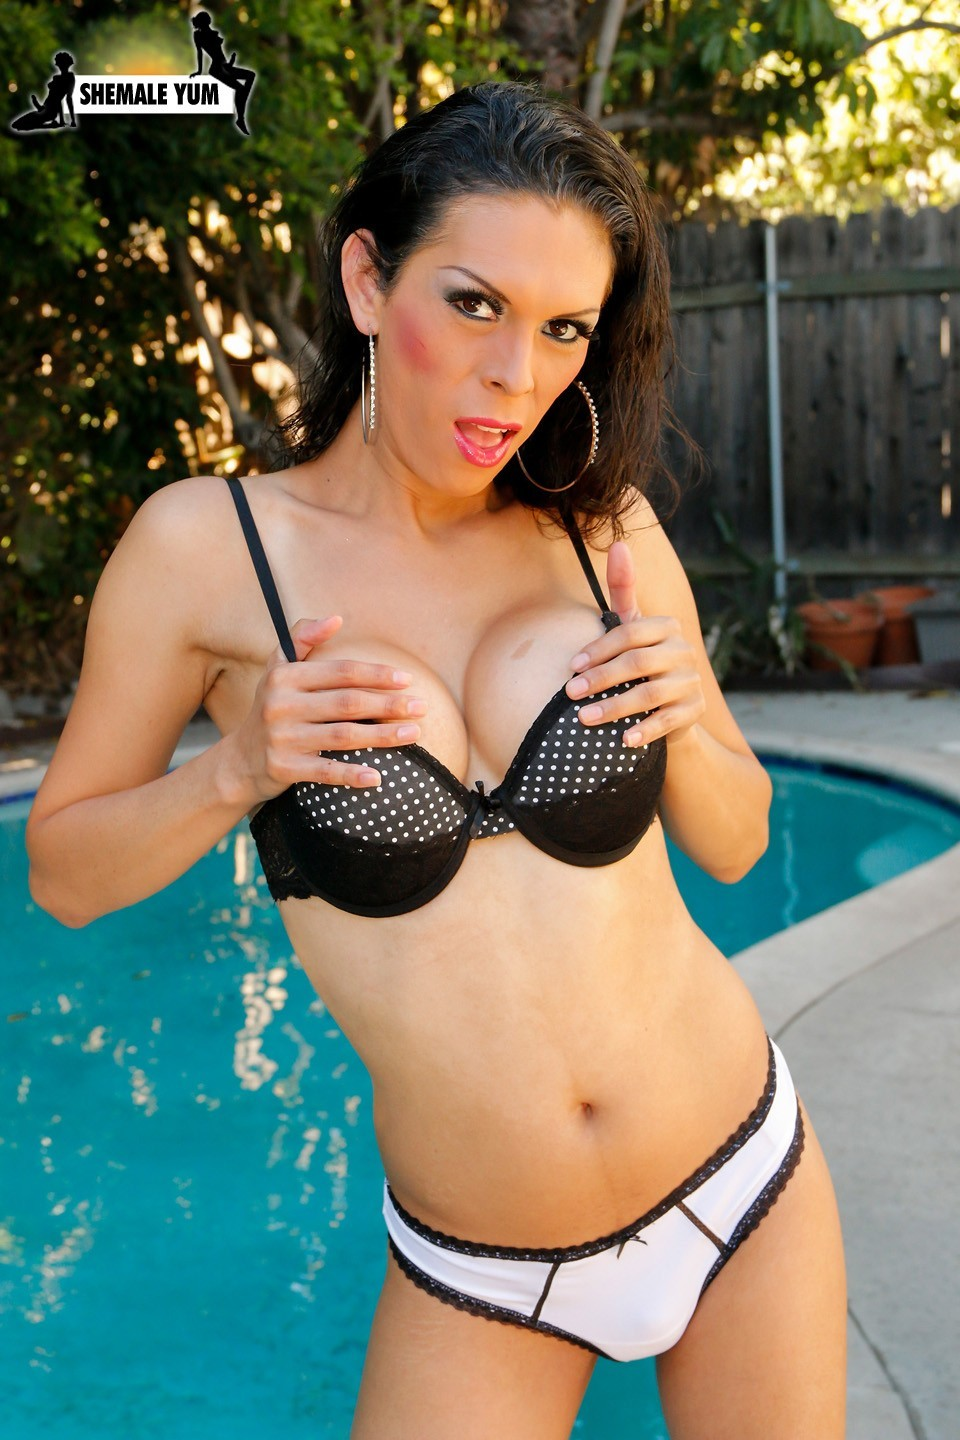 sophia lopez is voluptuous femboy babe